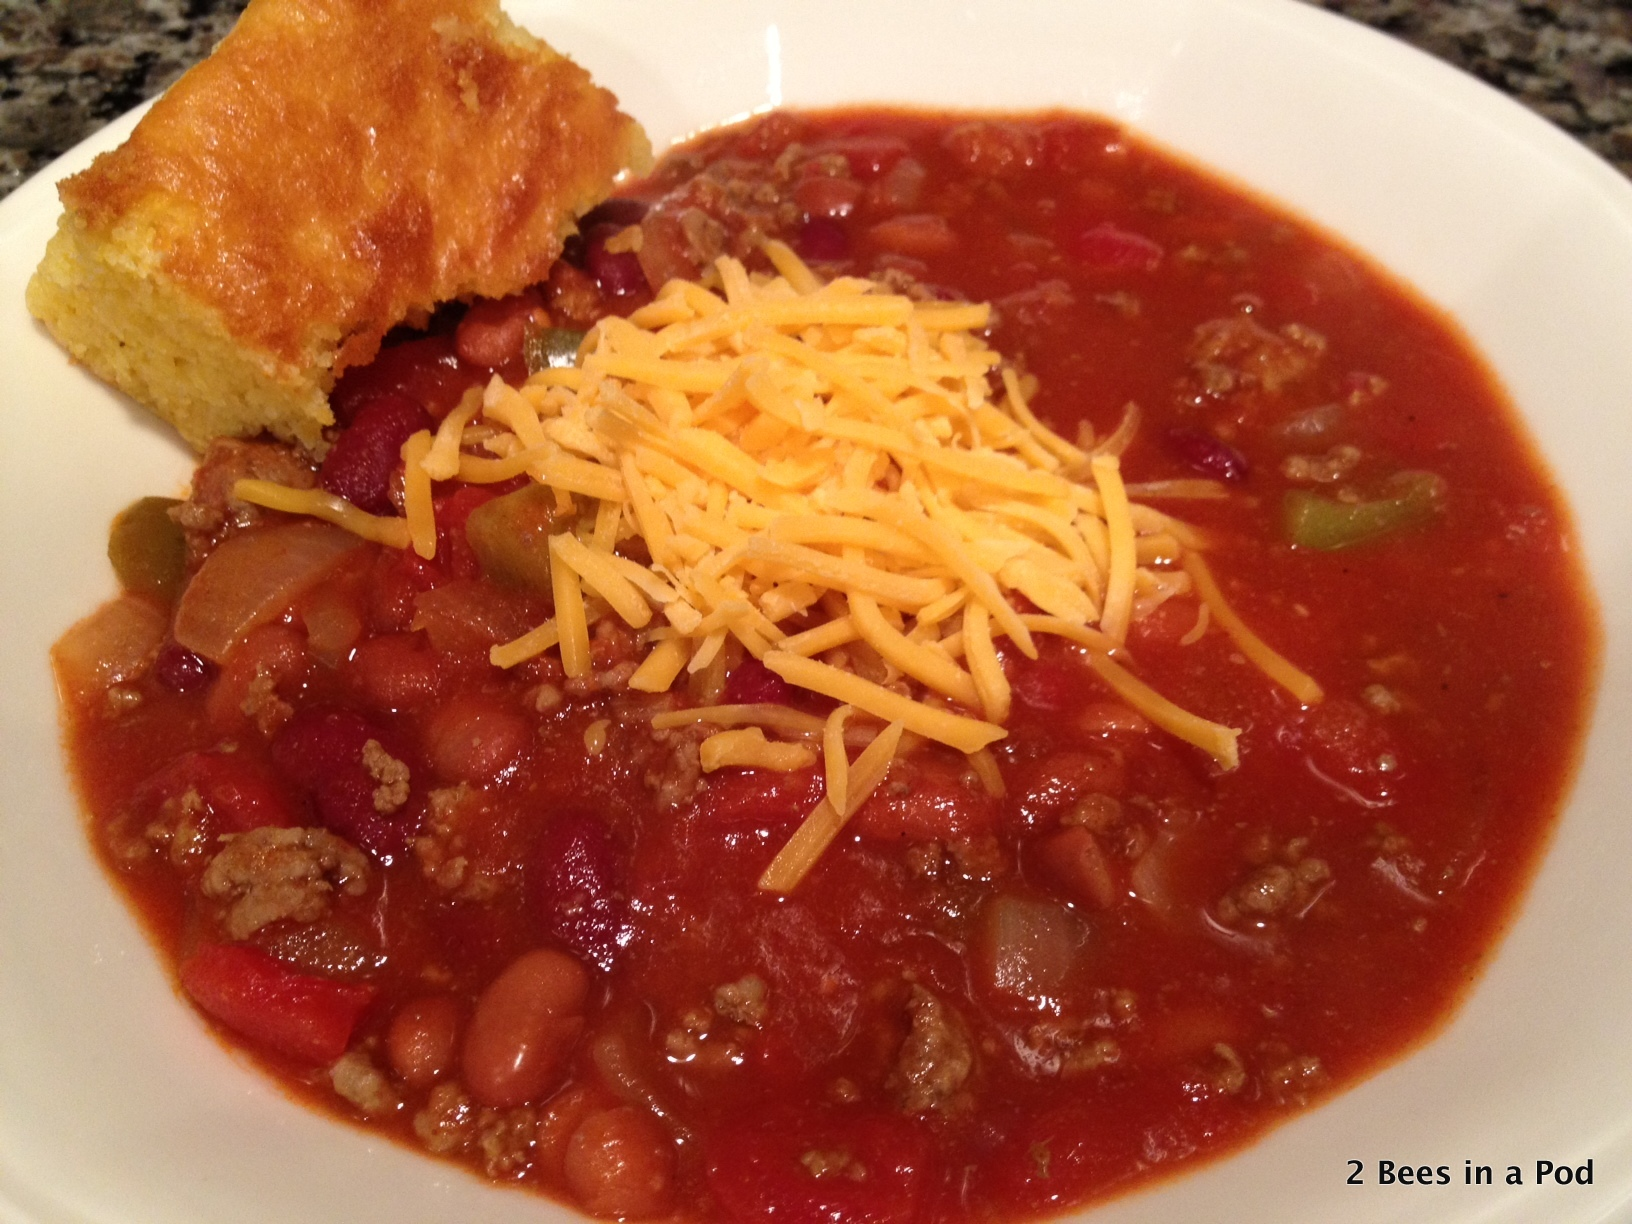 1-Yummy homemade chili with diced tomatoes, lean ground beef, kidney beans, chili beans - Weight Watchers points included